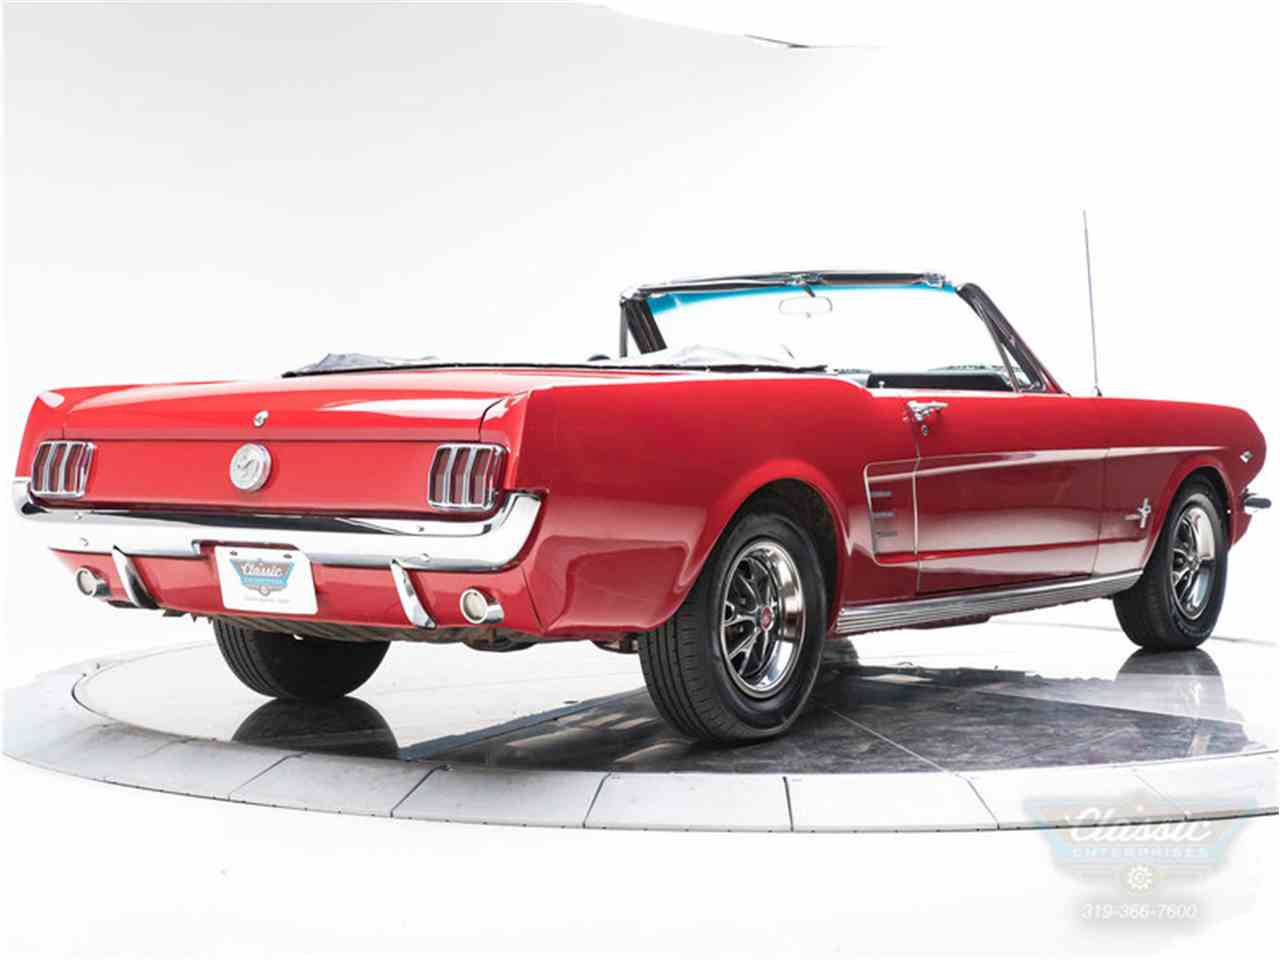 Large Picture of '66 Ford Mustang located in Cedar Rapids Iowa - $36,950.00 - MA5N